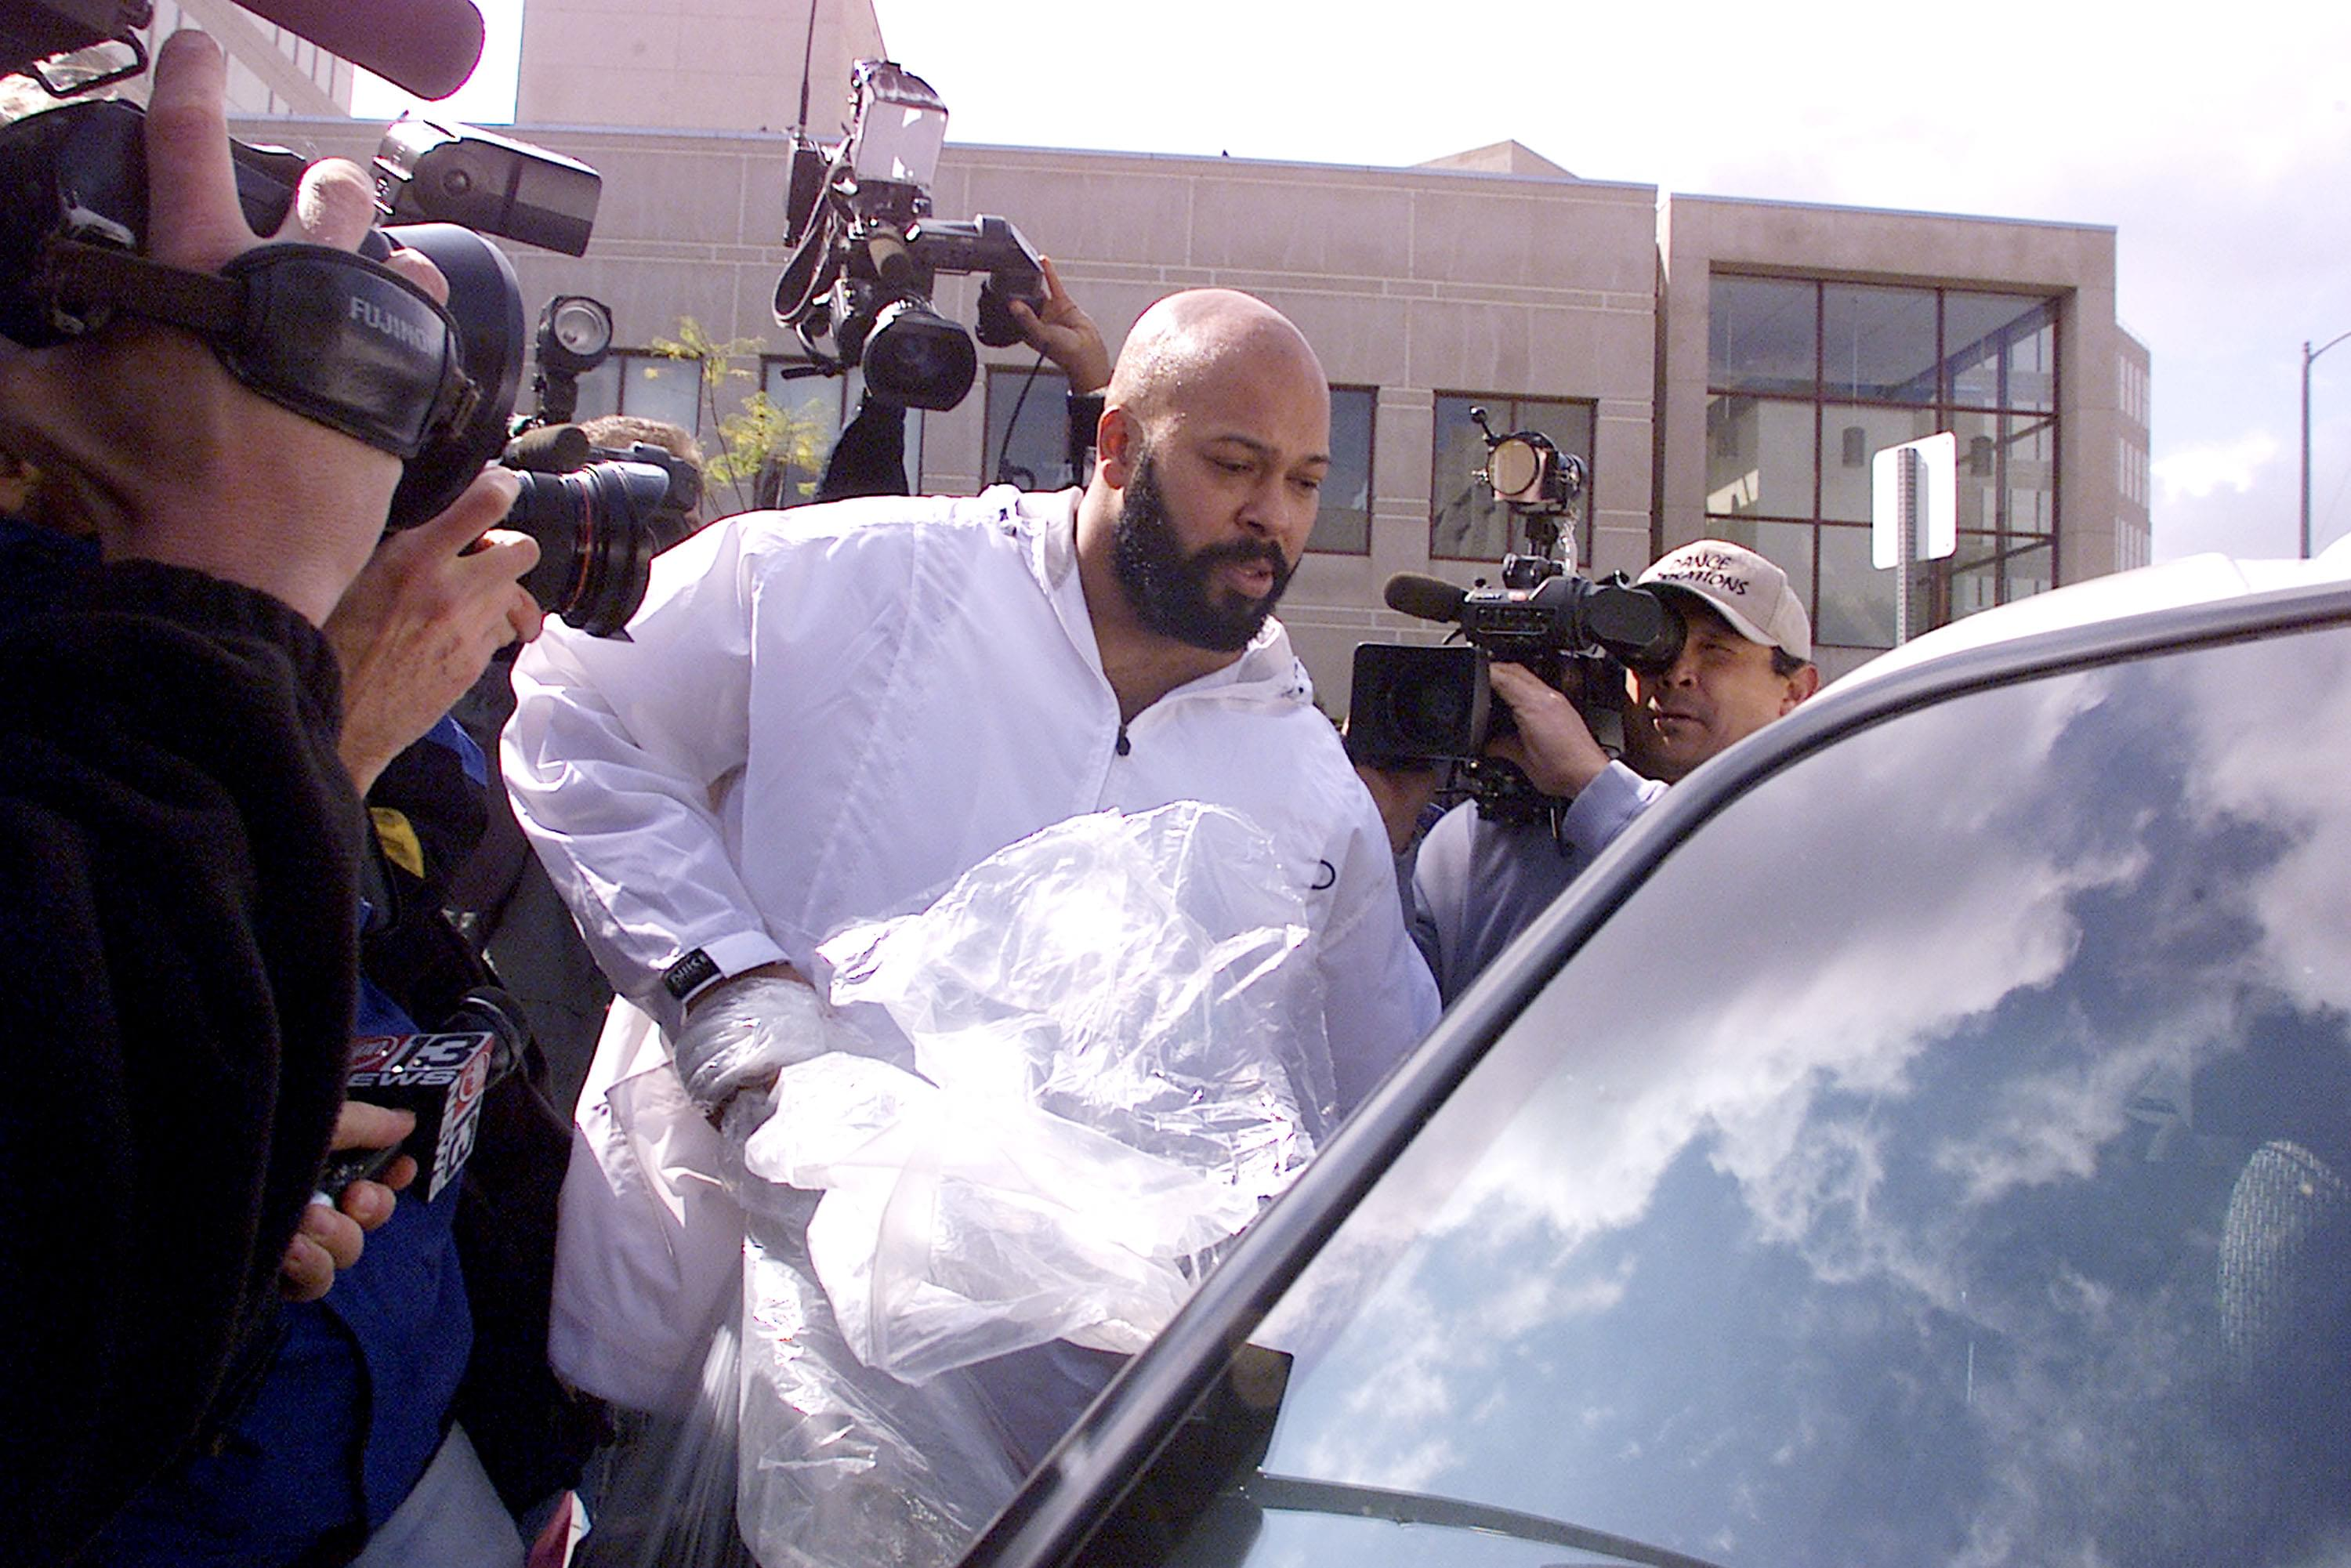 New Death Row Documentary Dropping Soon With Suge Knight Exclusives